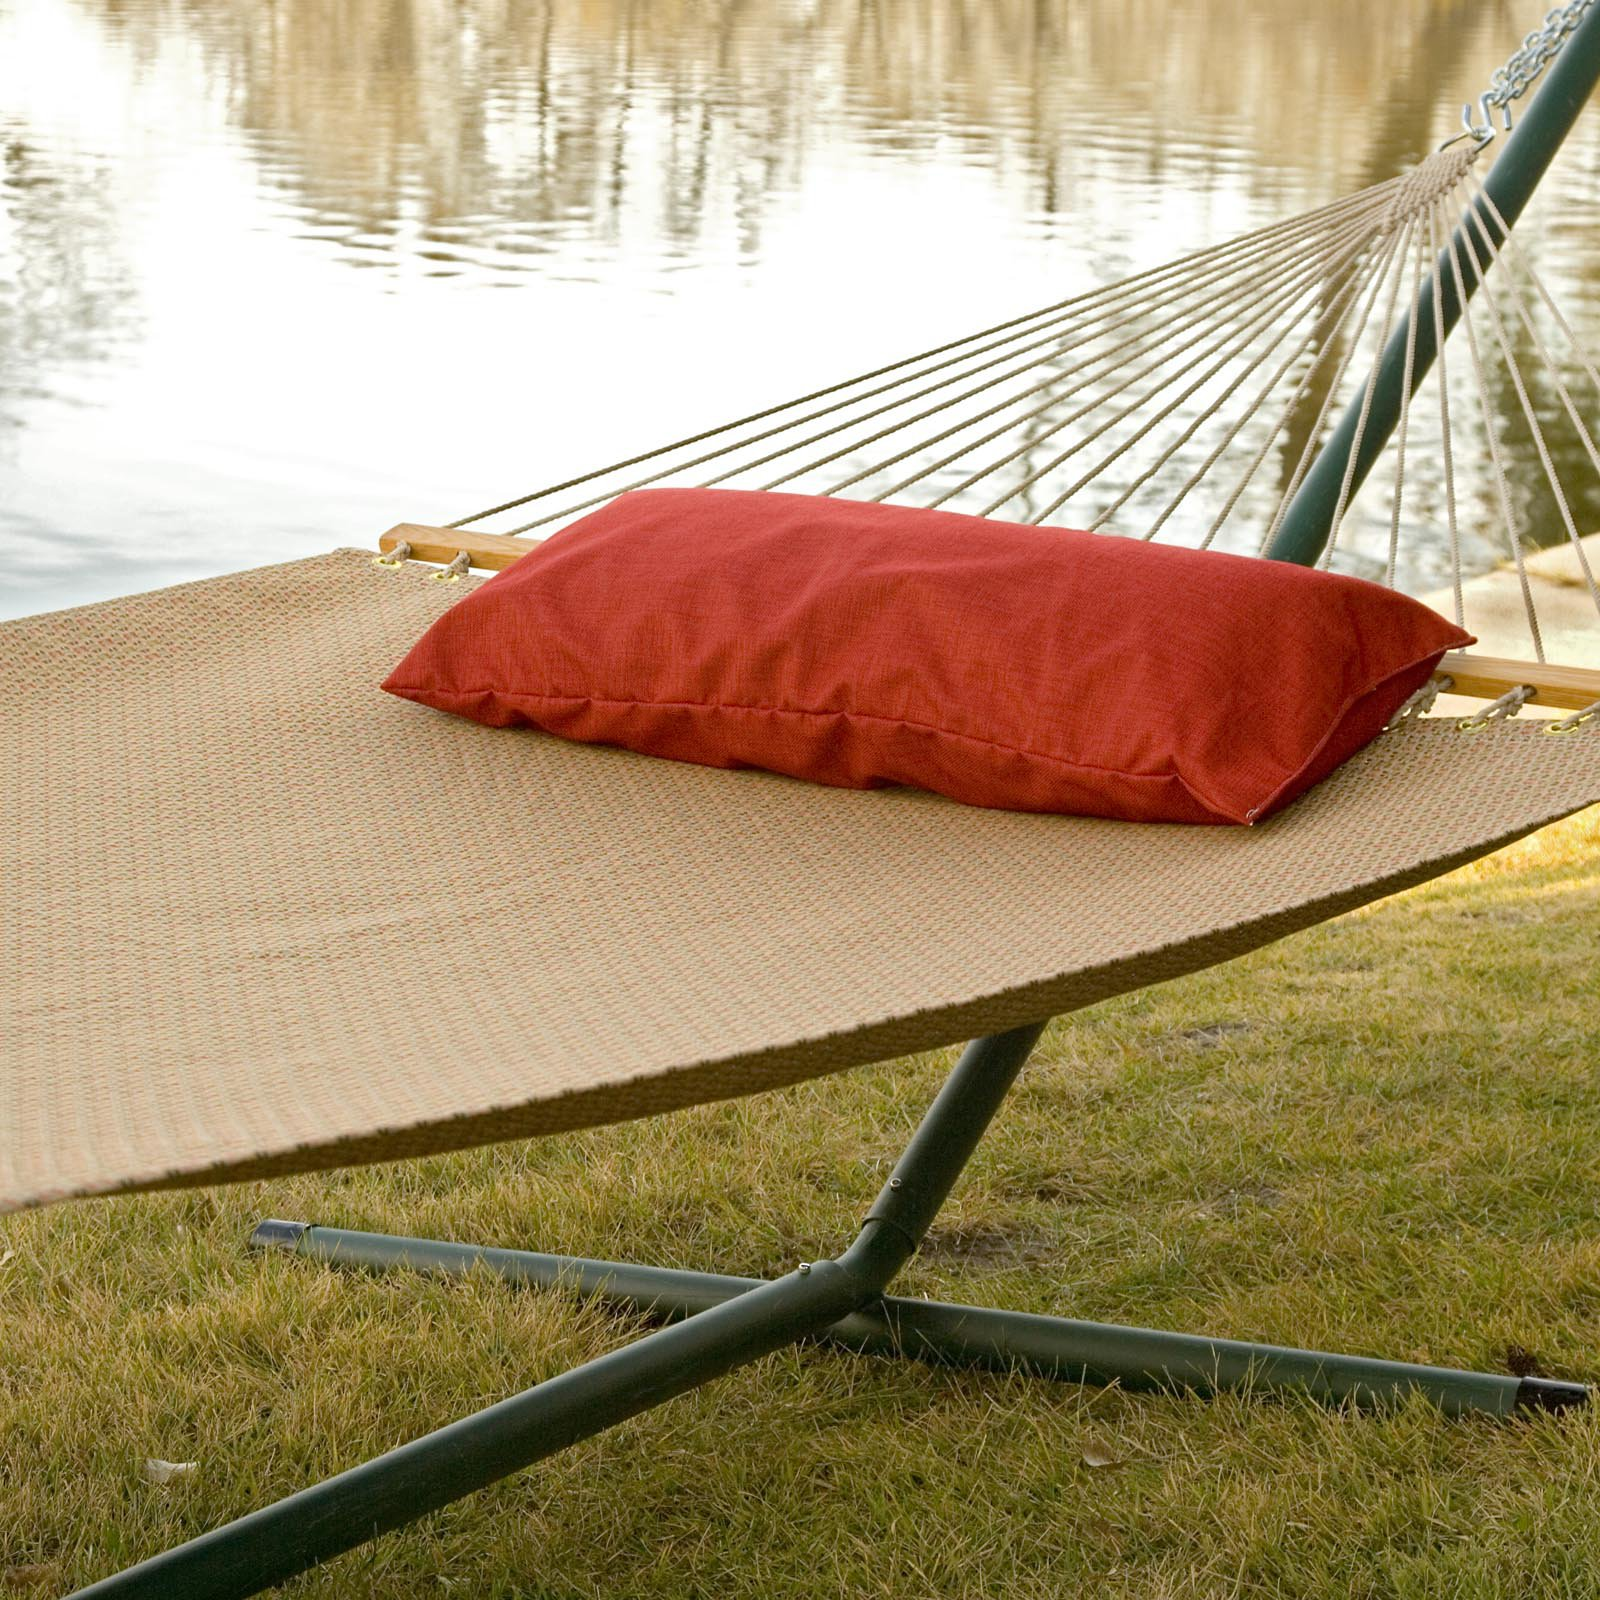 Twin Oaks Poolside Sunbrella Quick Dry Double Hammock with Stand